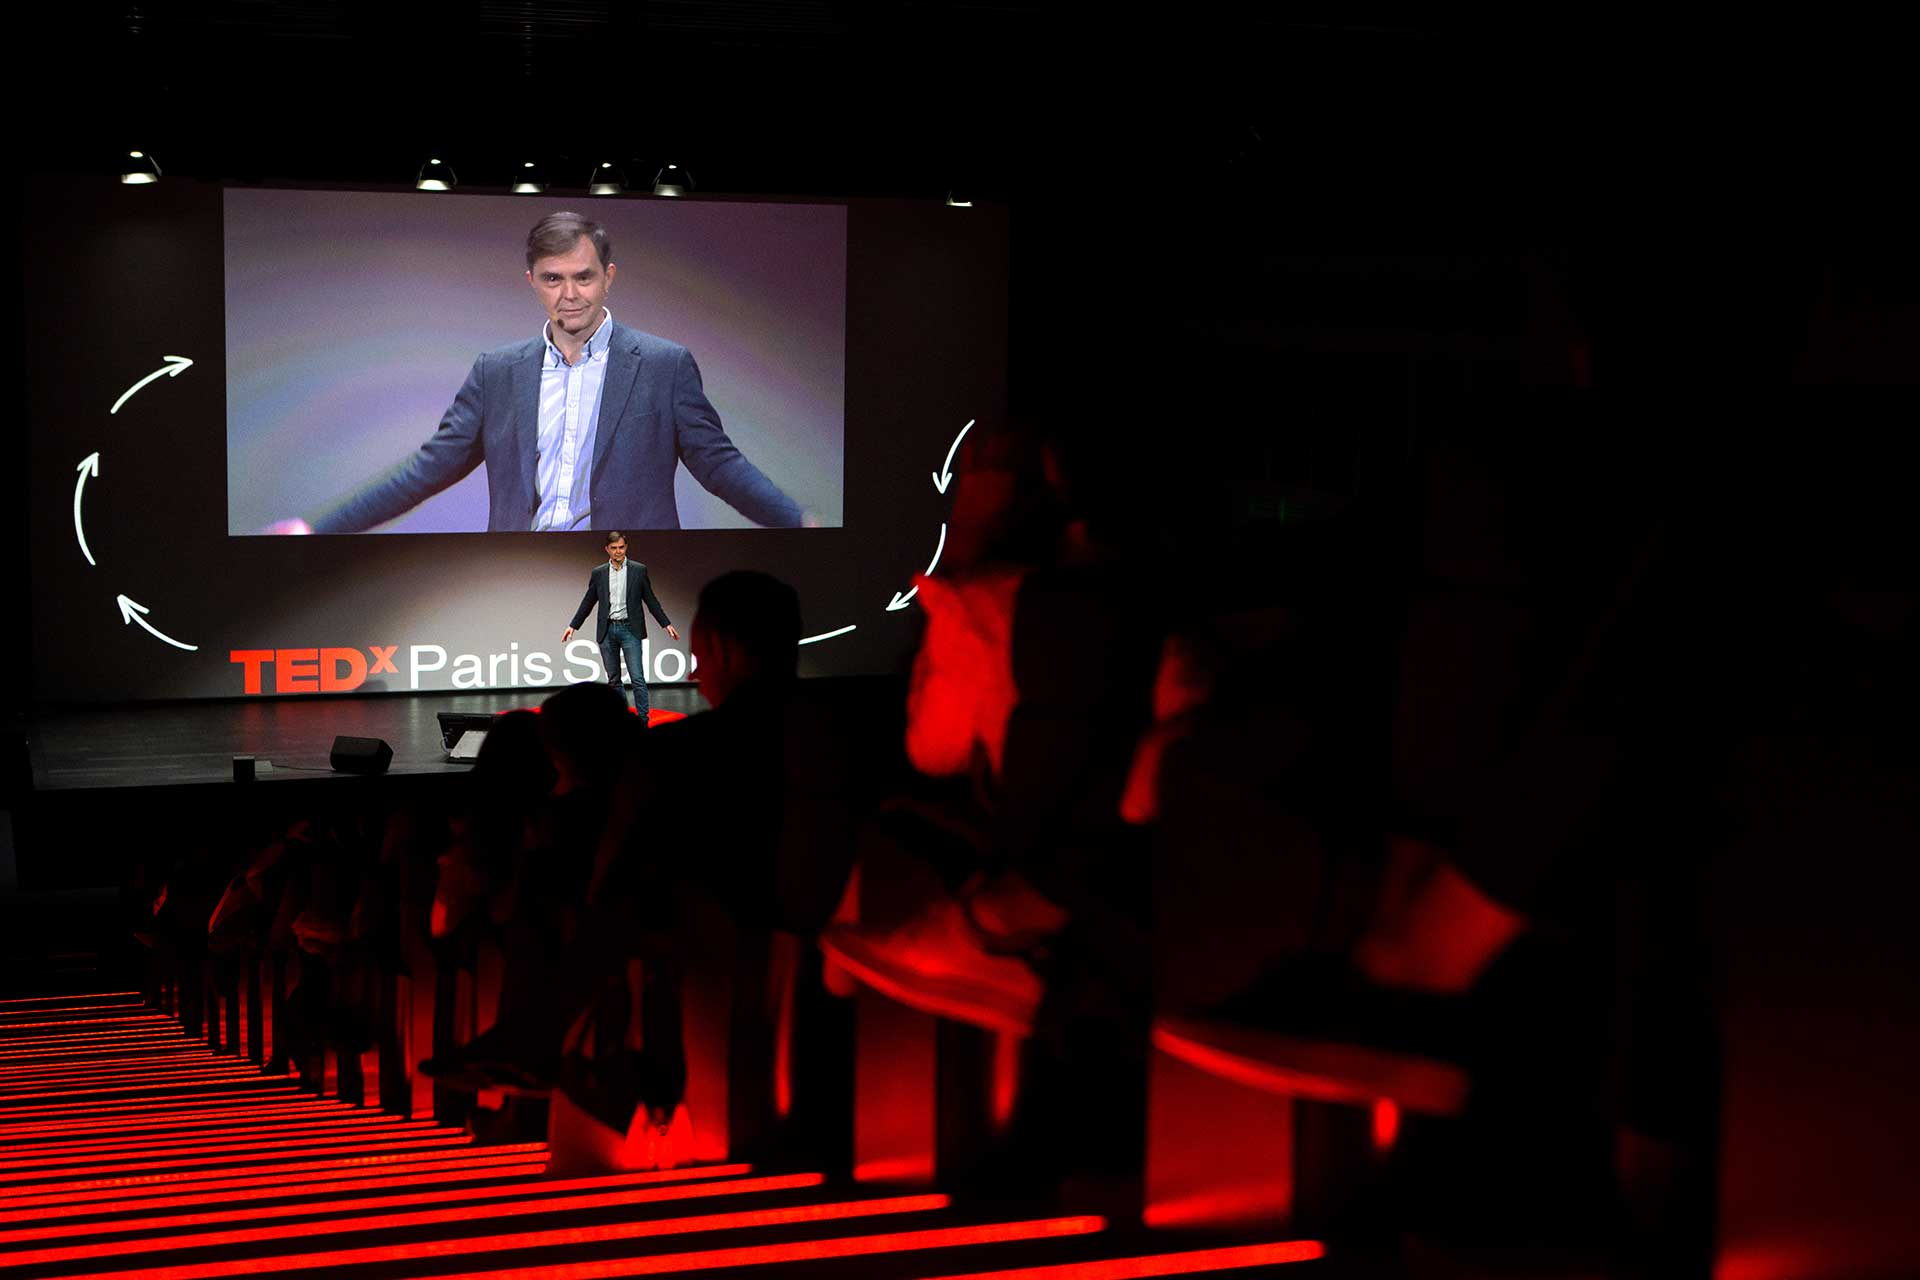 conference-TEDxParisSalon-2019-6.jpg